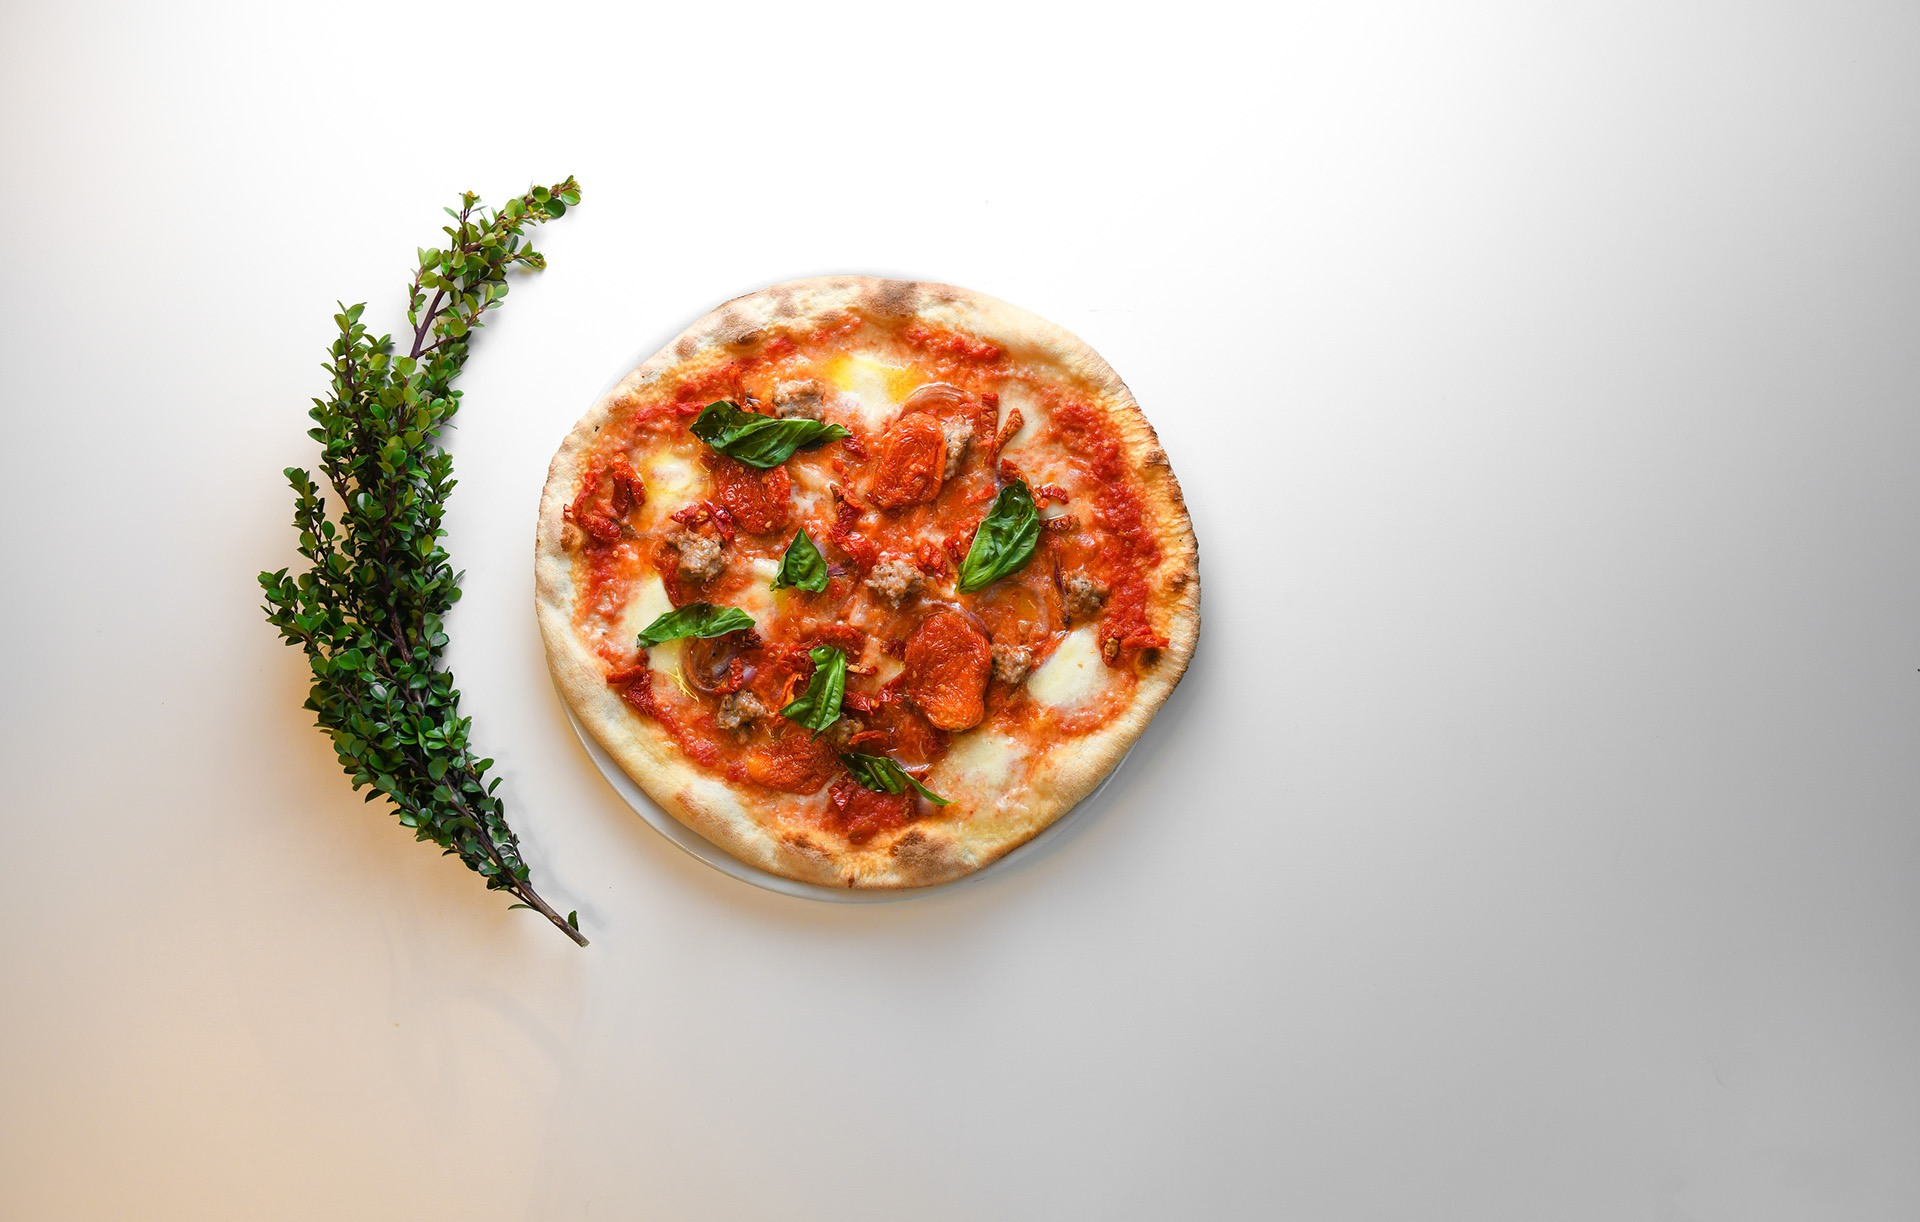 milanese-style pizza